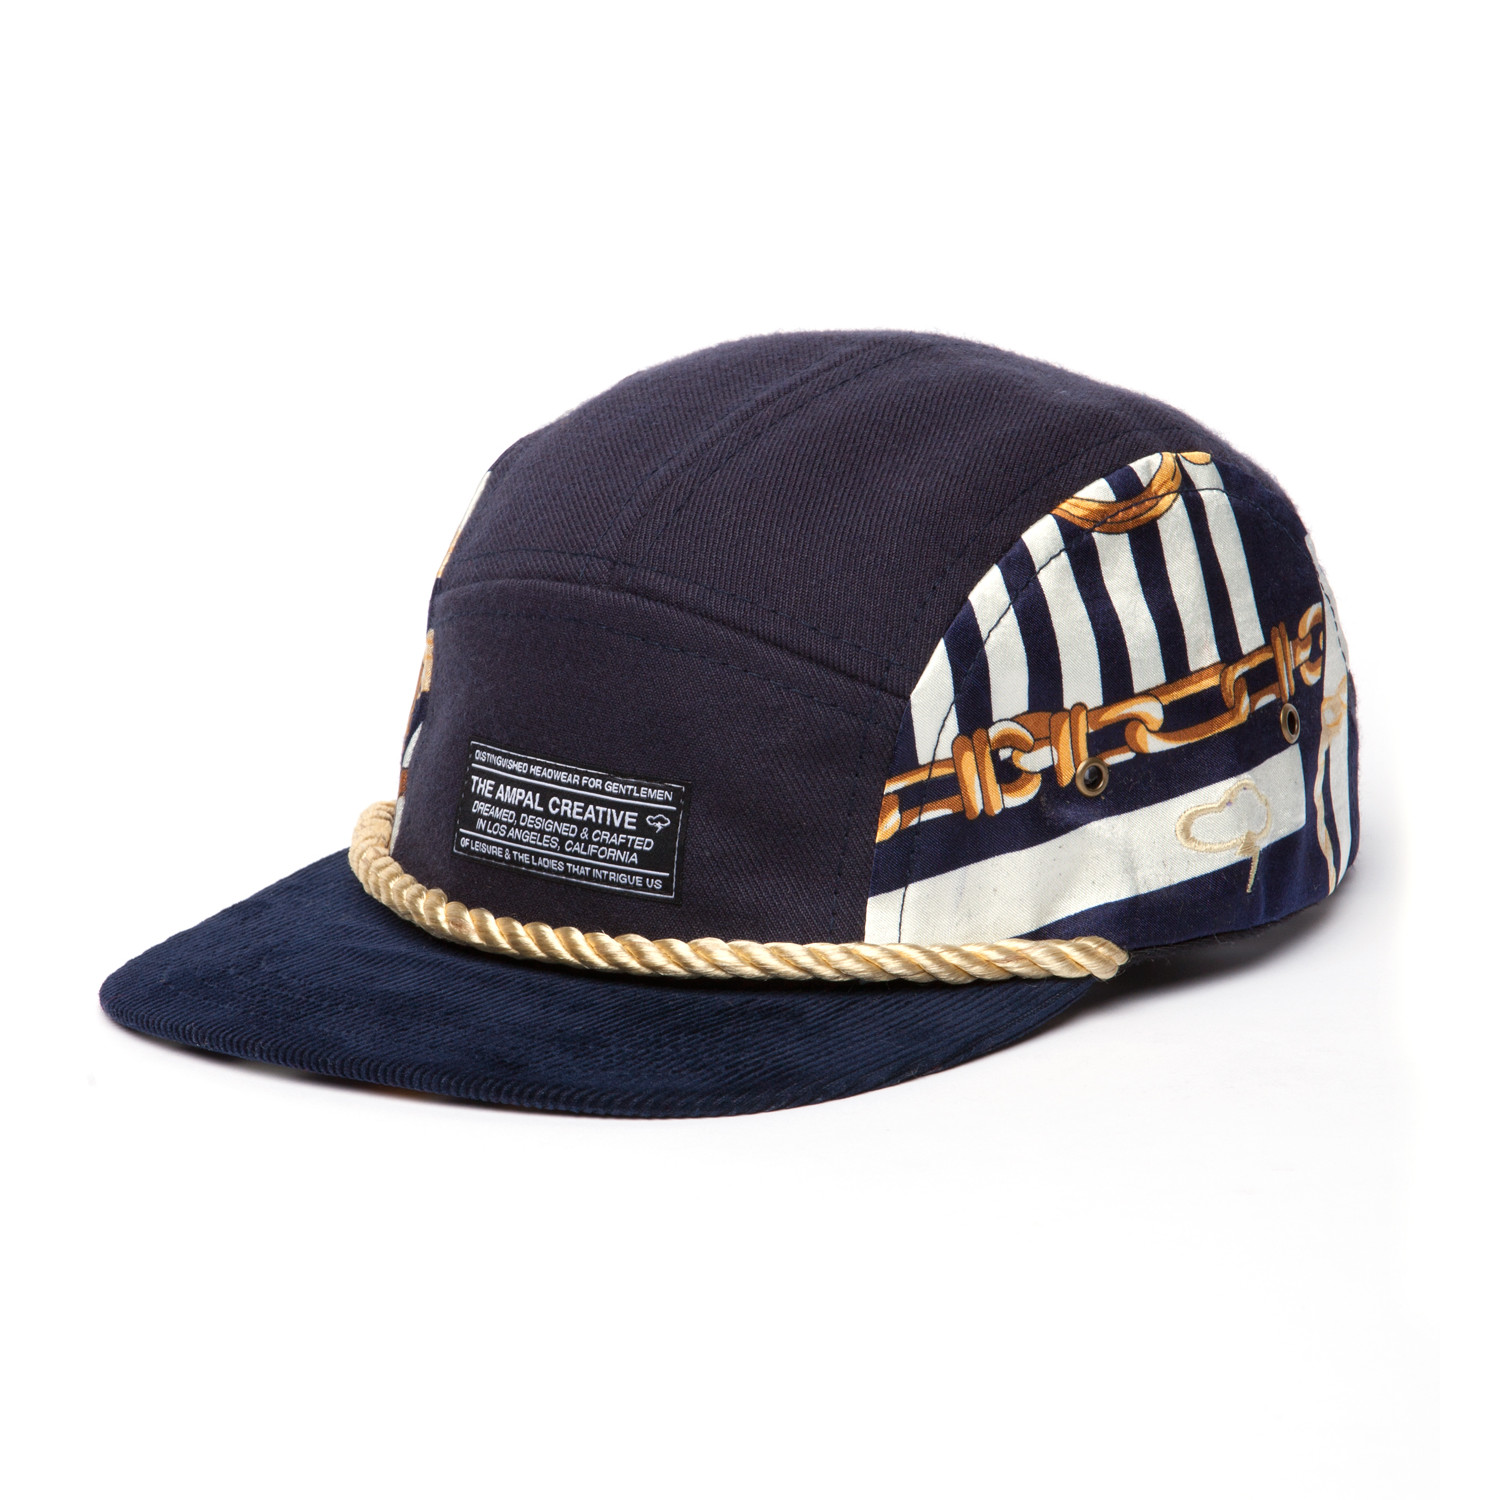 Yachtmaster Camp Hat - The Ampal Creative - Touch of Modern